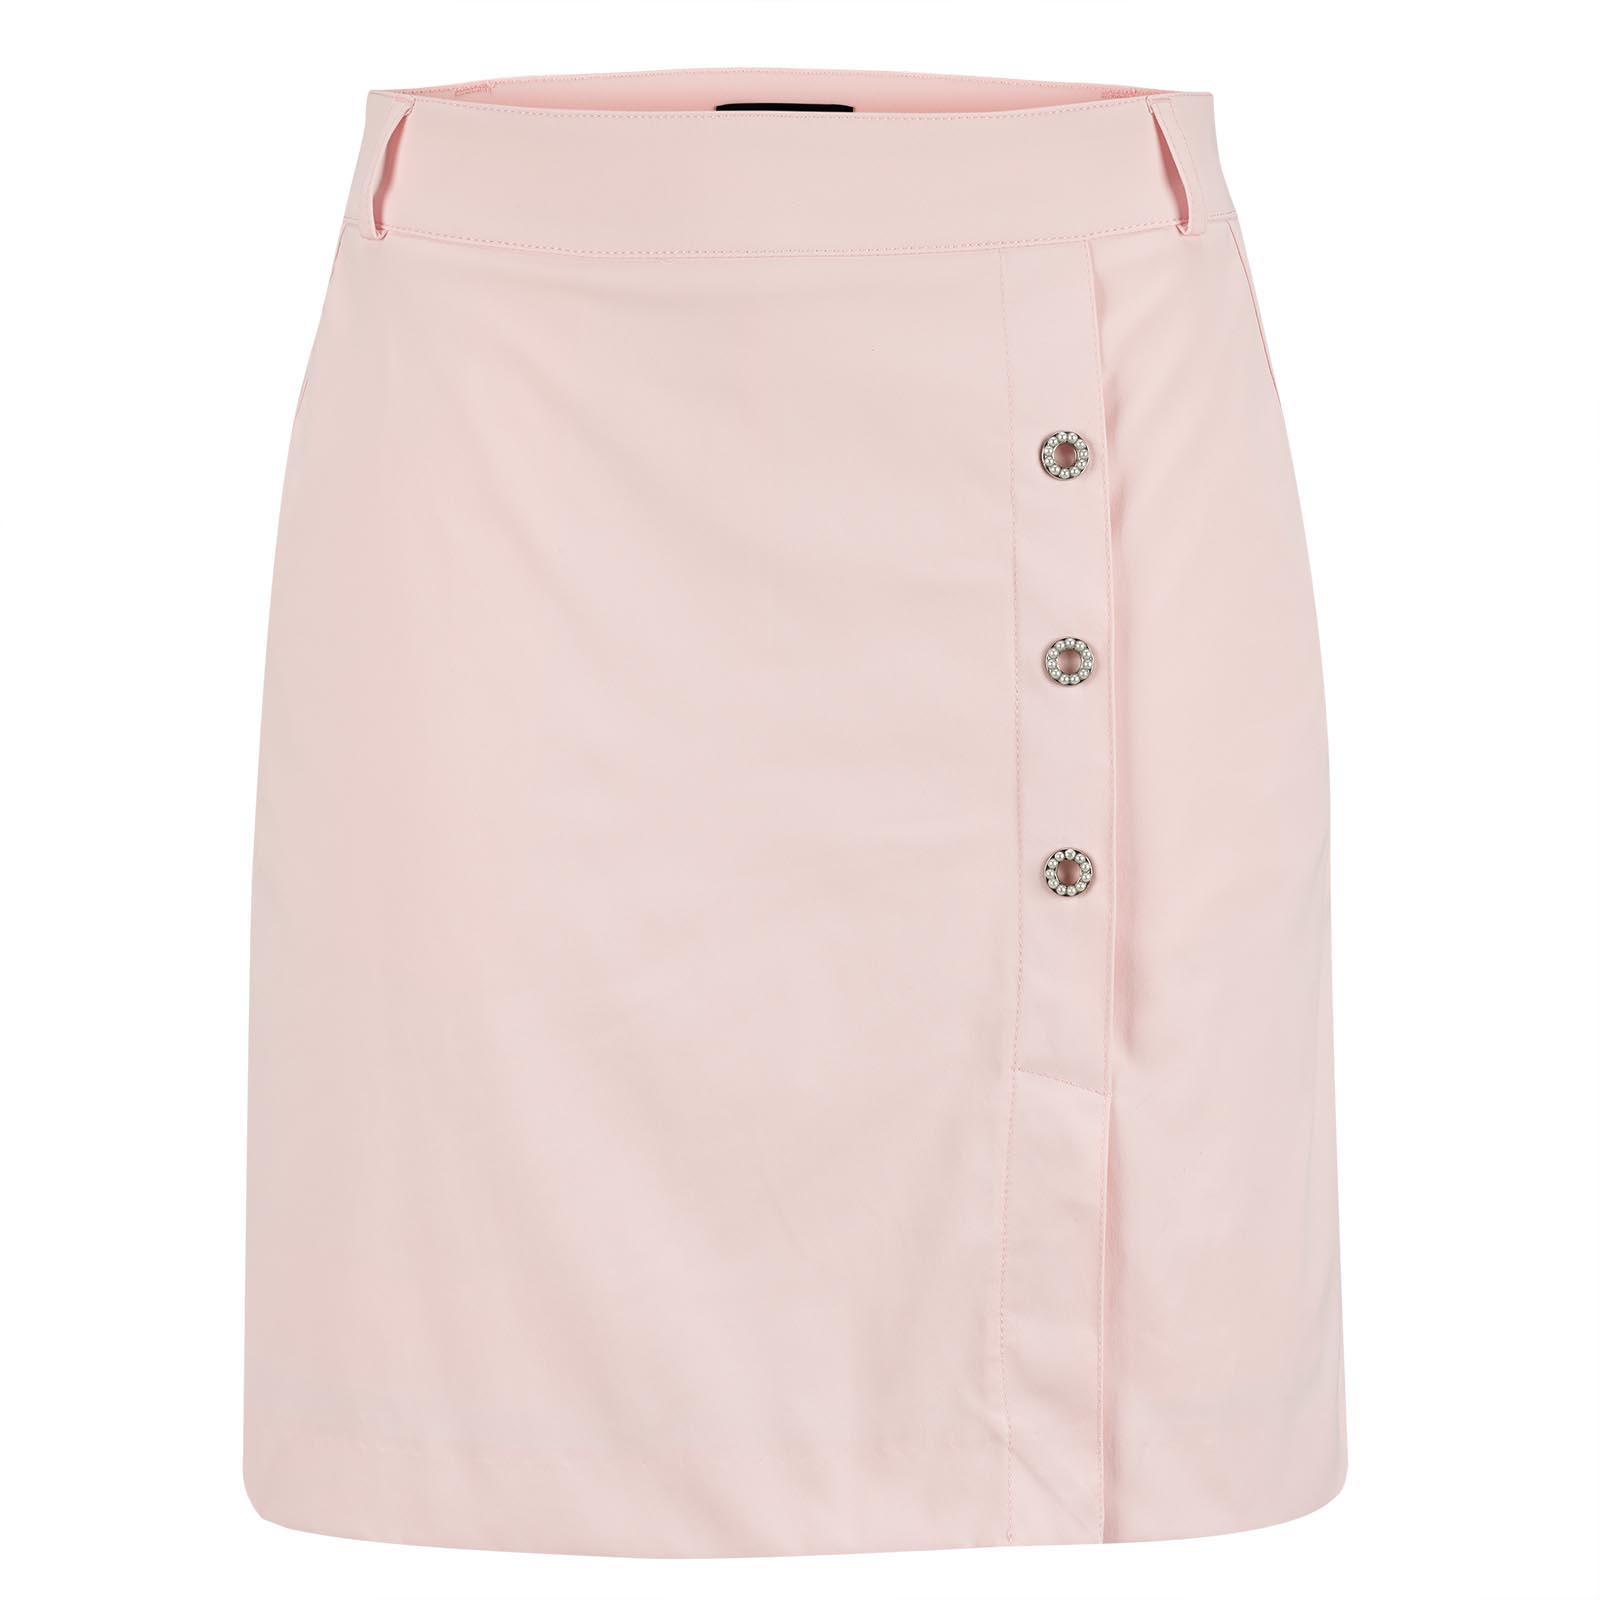 Damen Funktions-Golfskort Medium mit Sun Protection